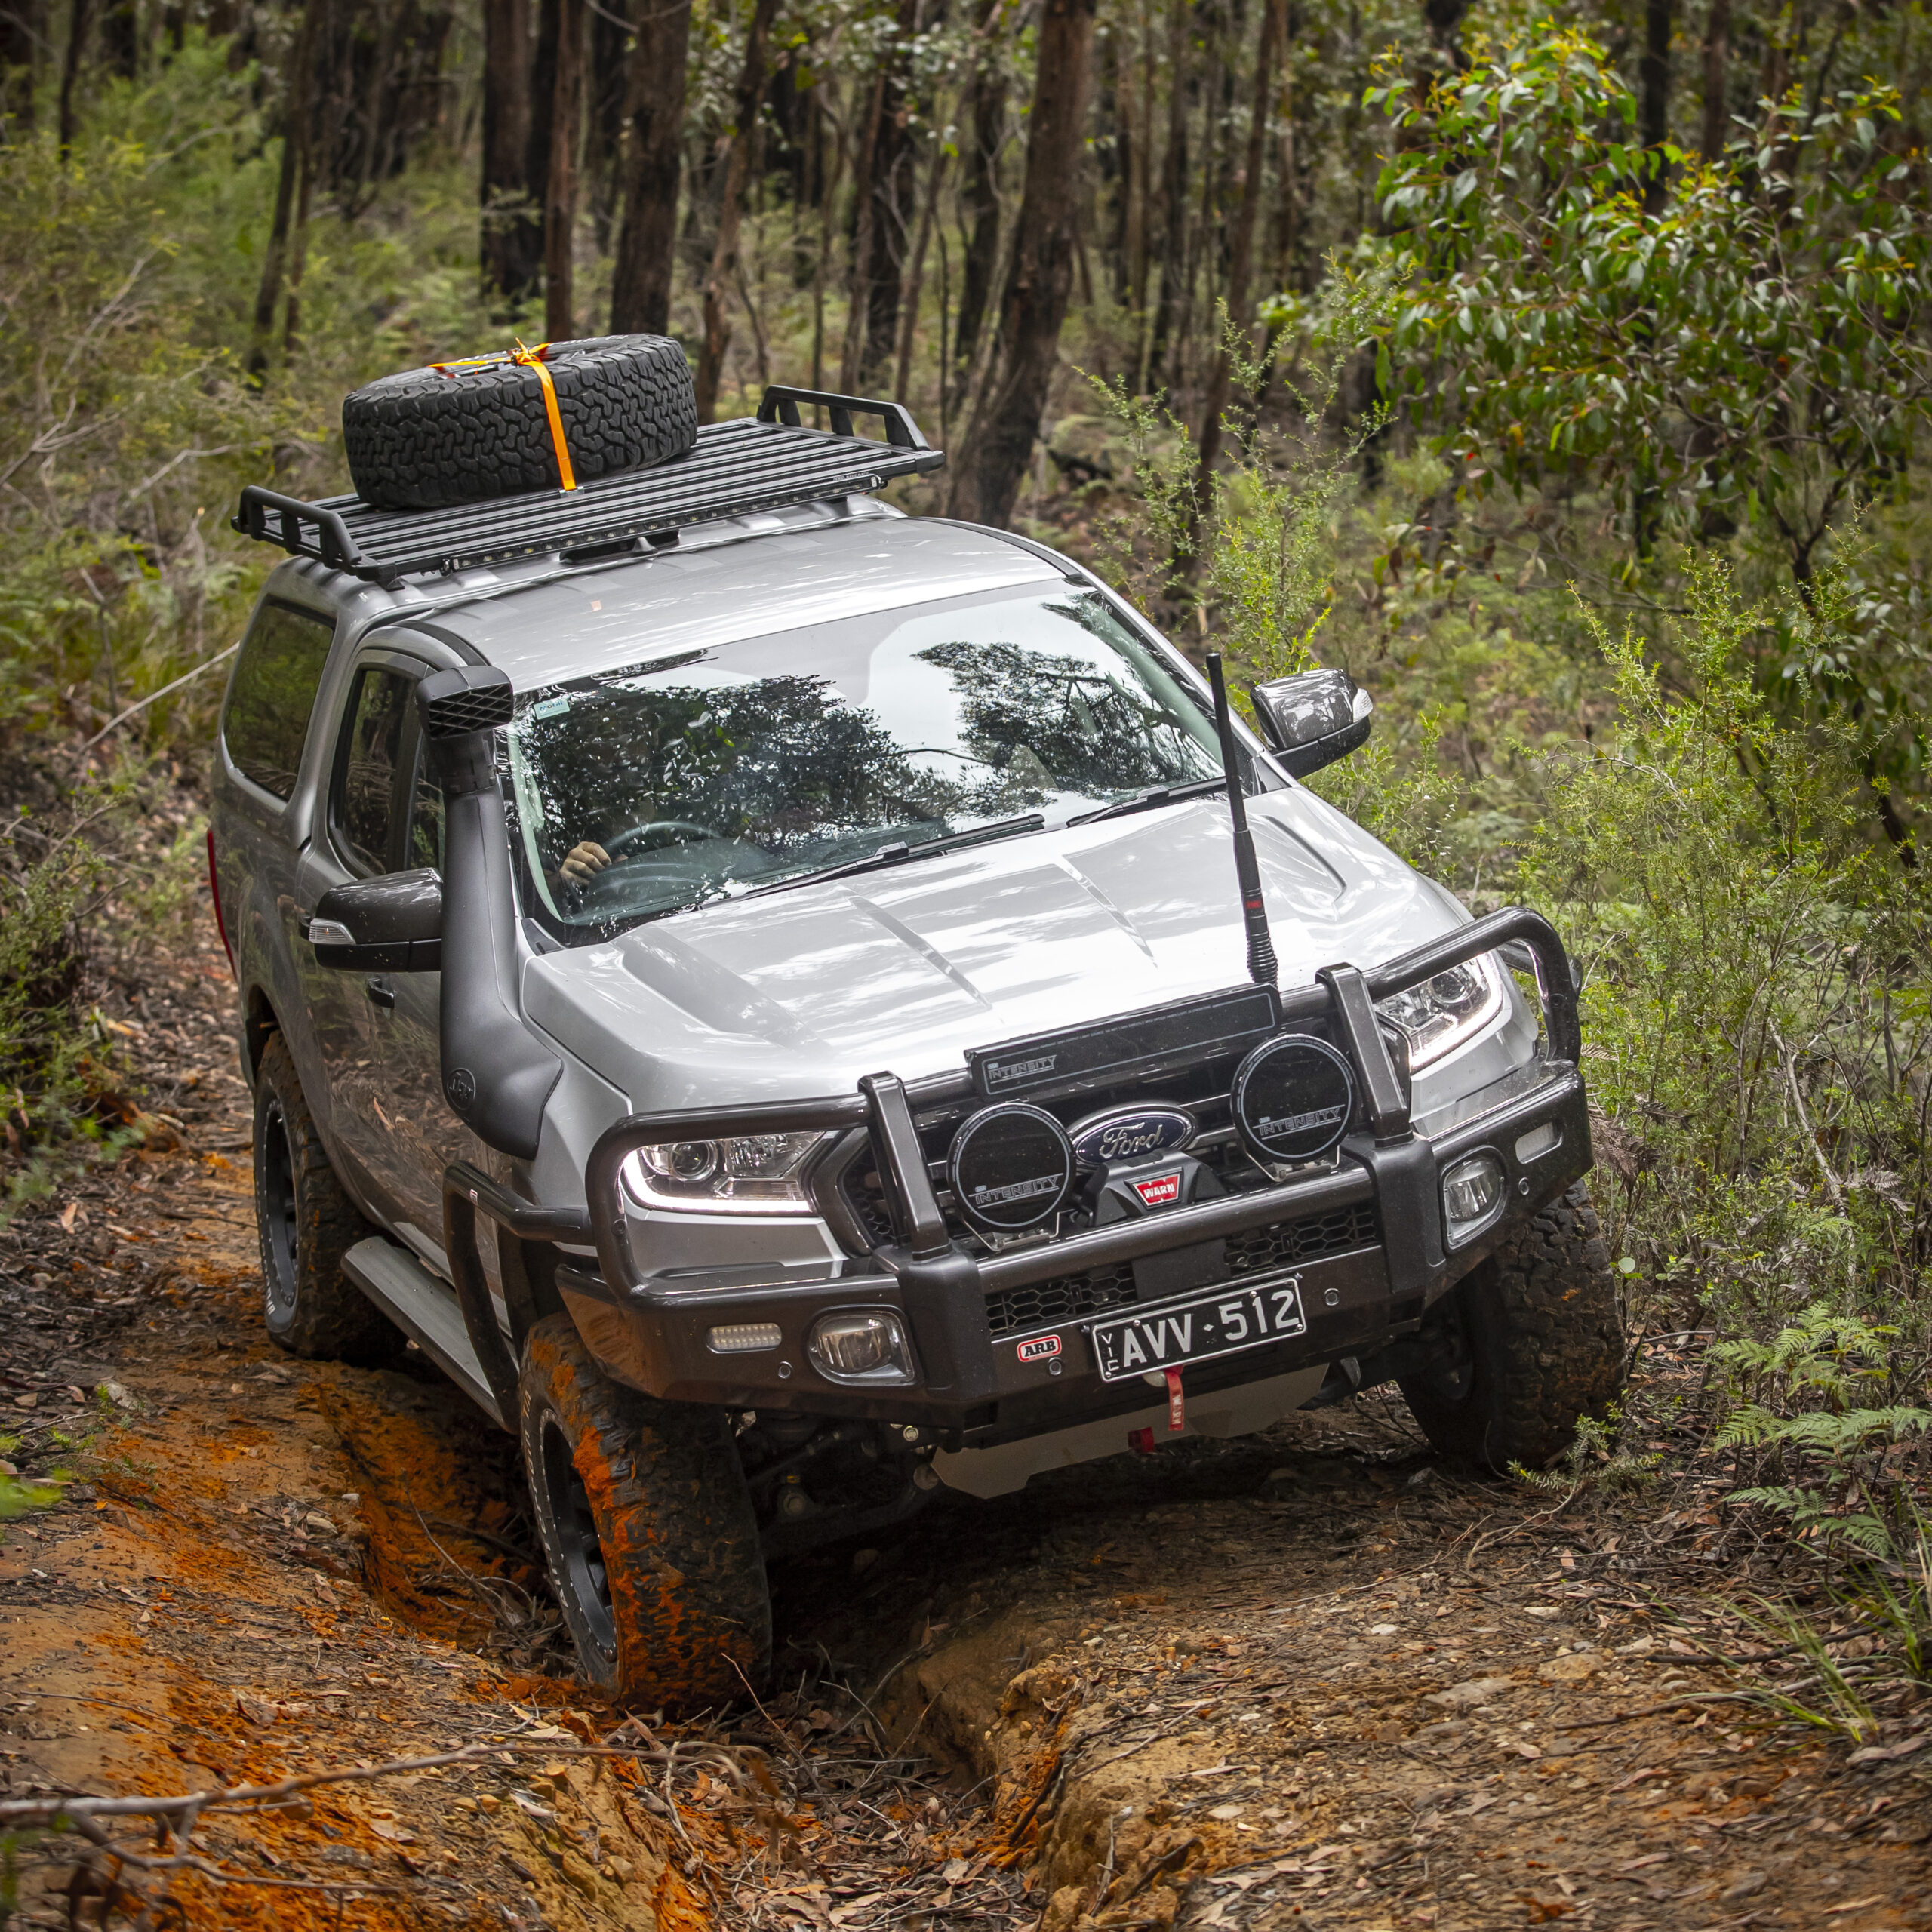 ARB Base Rack on car in forest